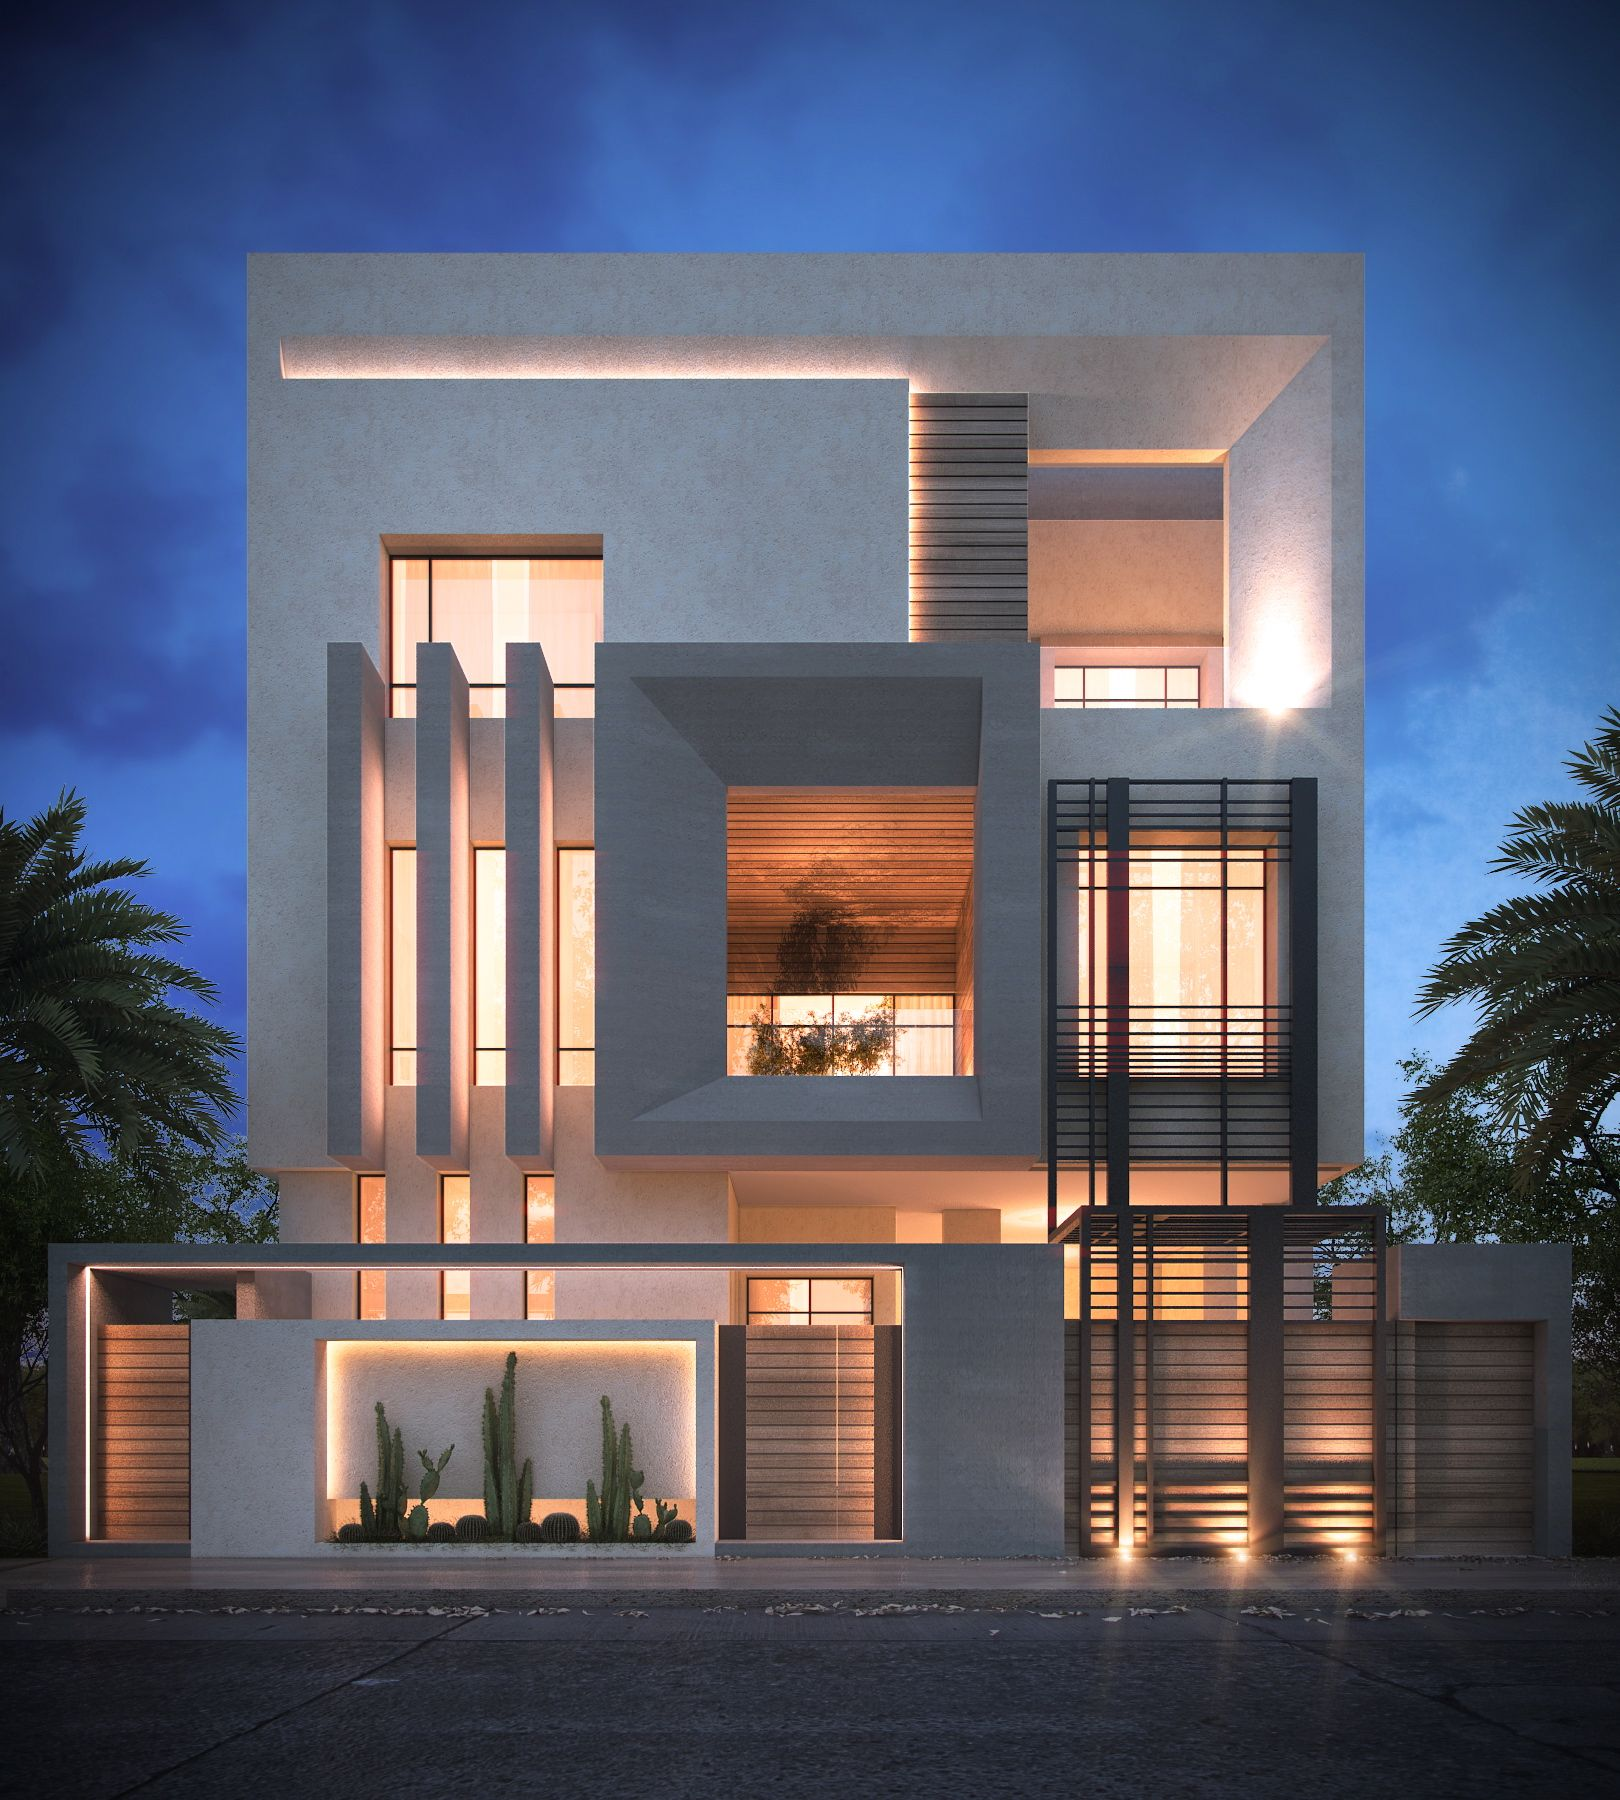 Private villa  Sarah Sadeq Architects kuwait  Construction ideas in 2019  House design